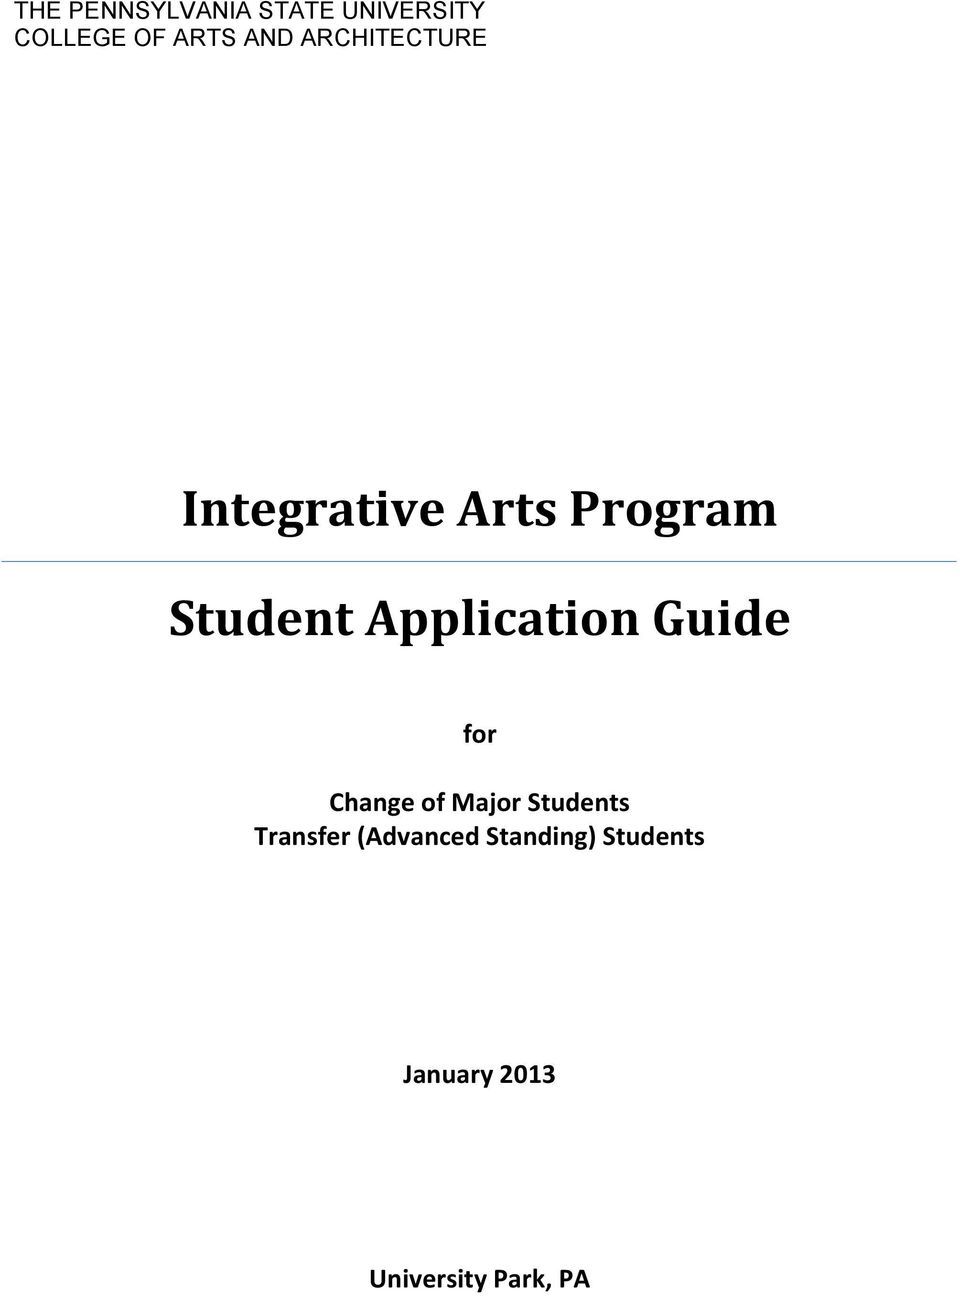 Application Guide for Change of Major Students